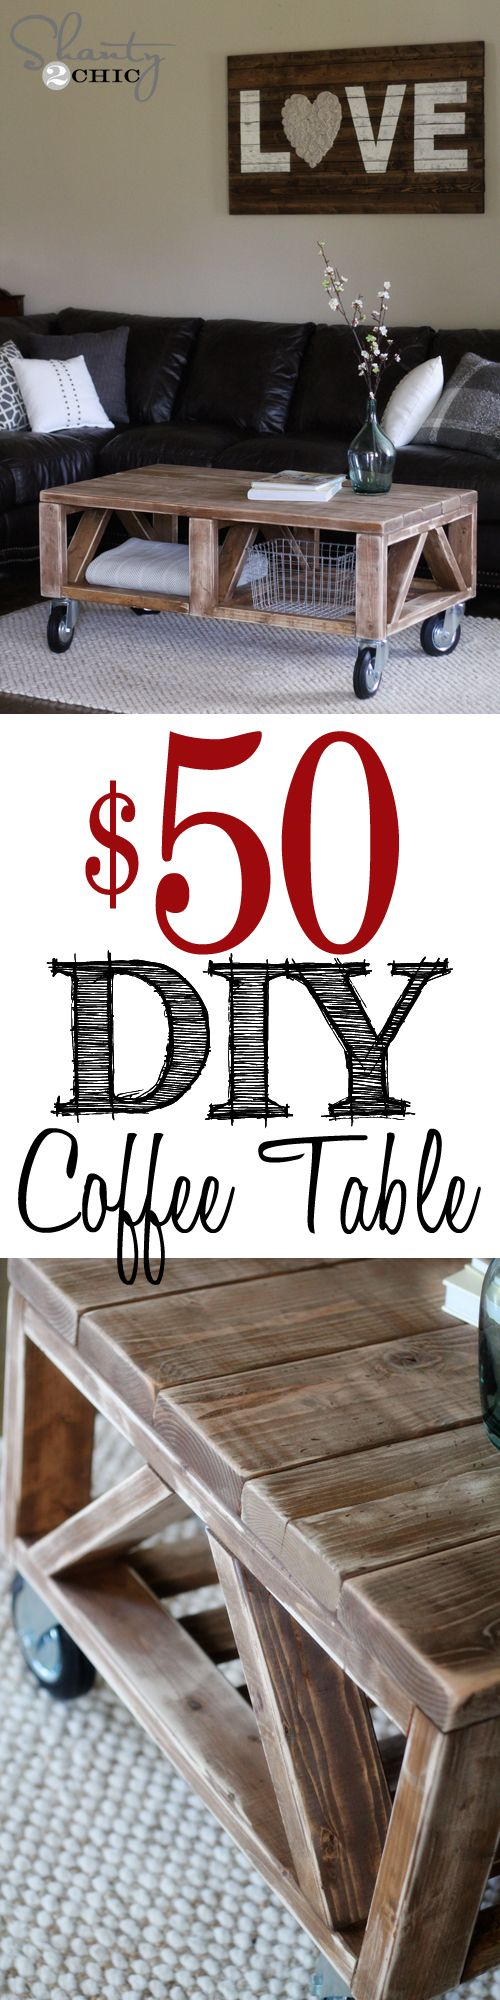 Captivating Coffee Table DIY